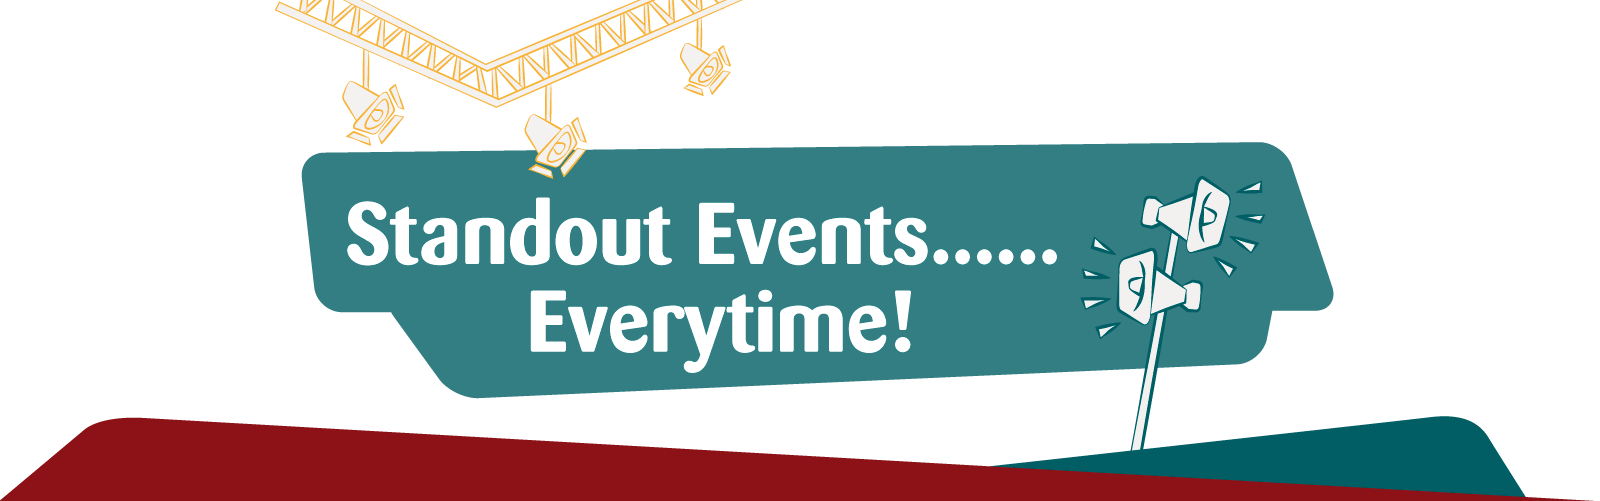 Standout Events